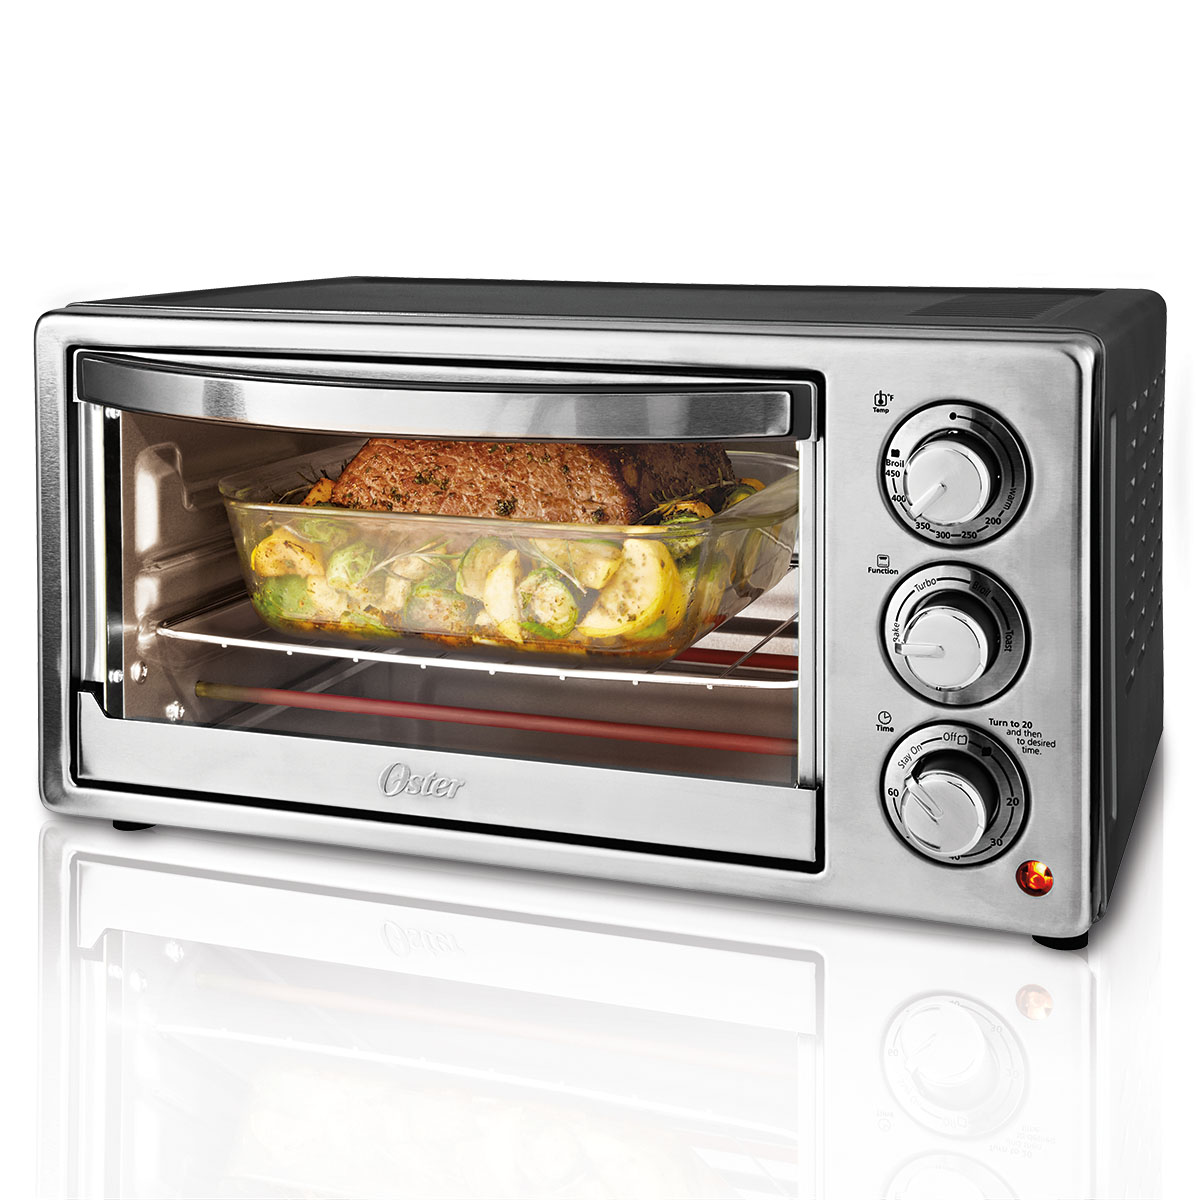 Oster 6-Slice Convection Toaster Oven TSSTTVF817